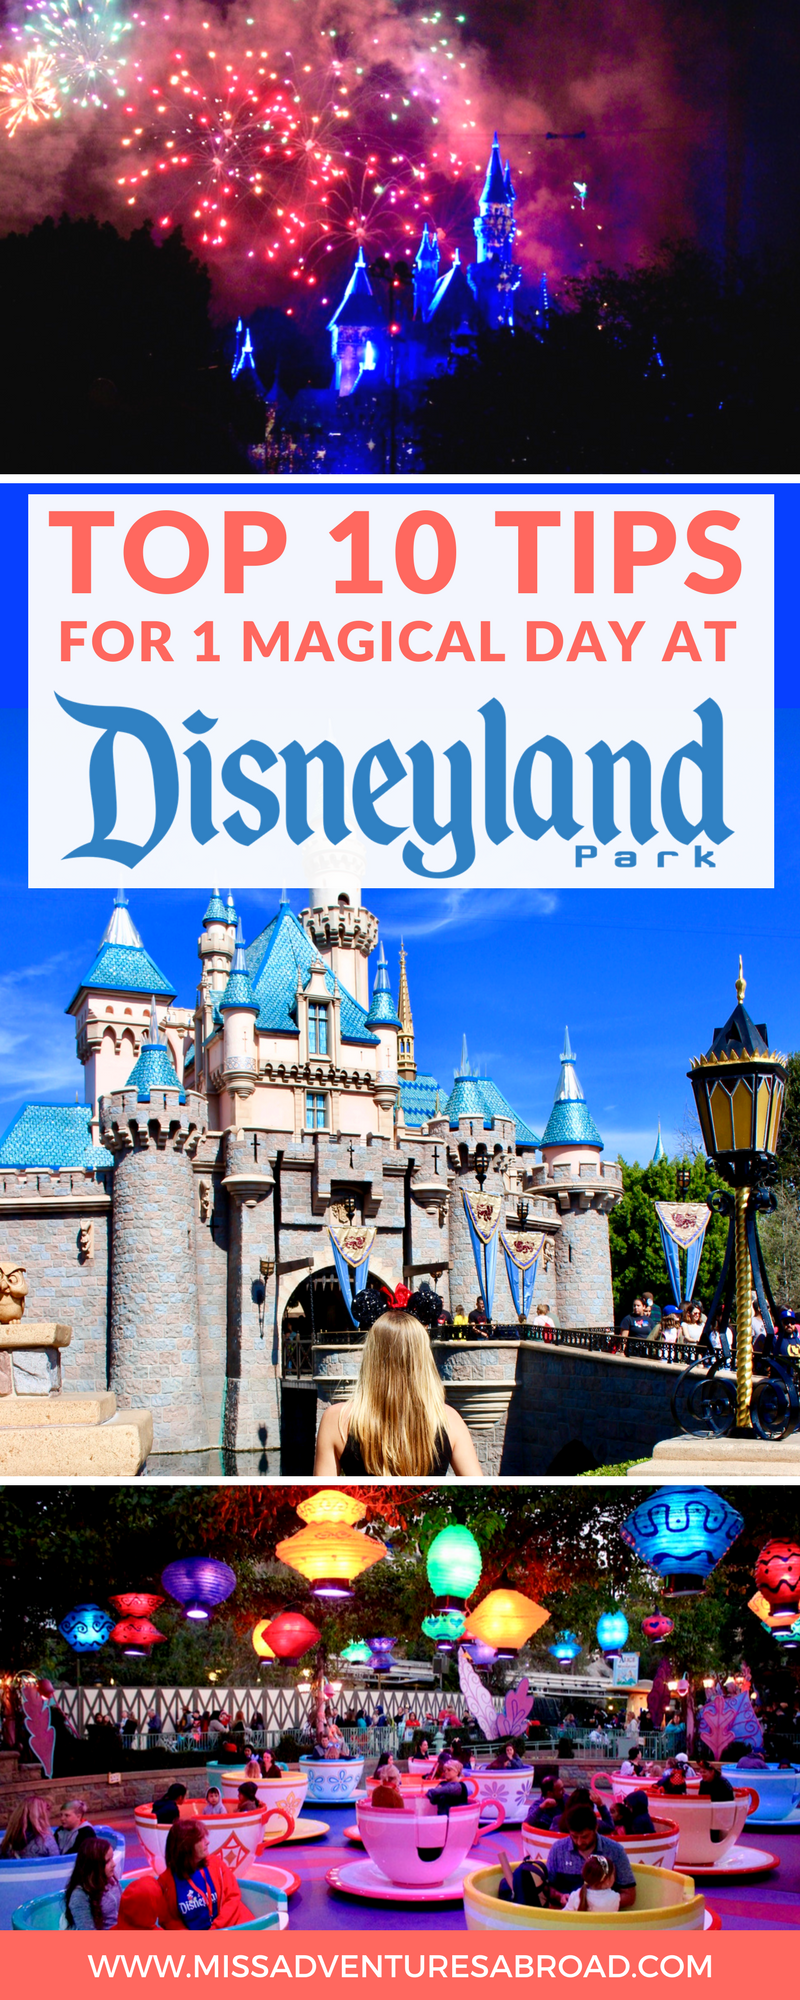 10 Tips For 1 Magical Day At Disneyland, California